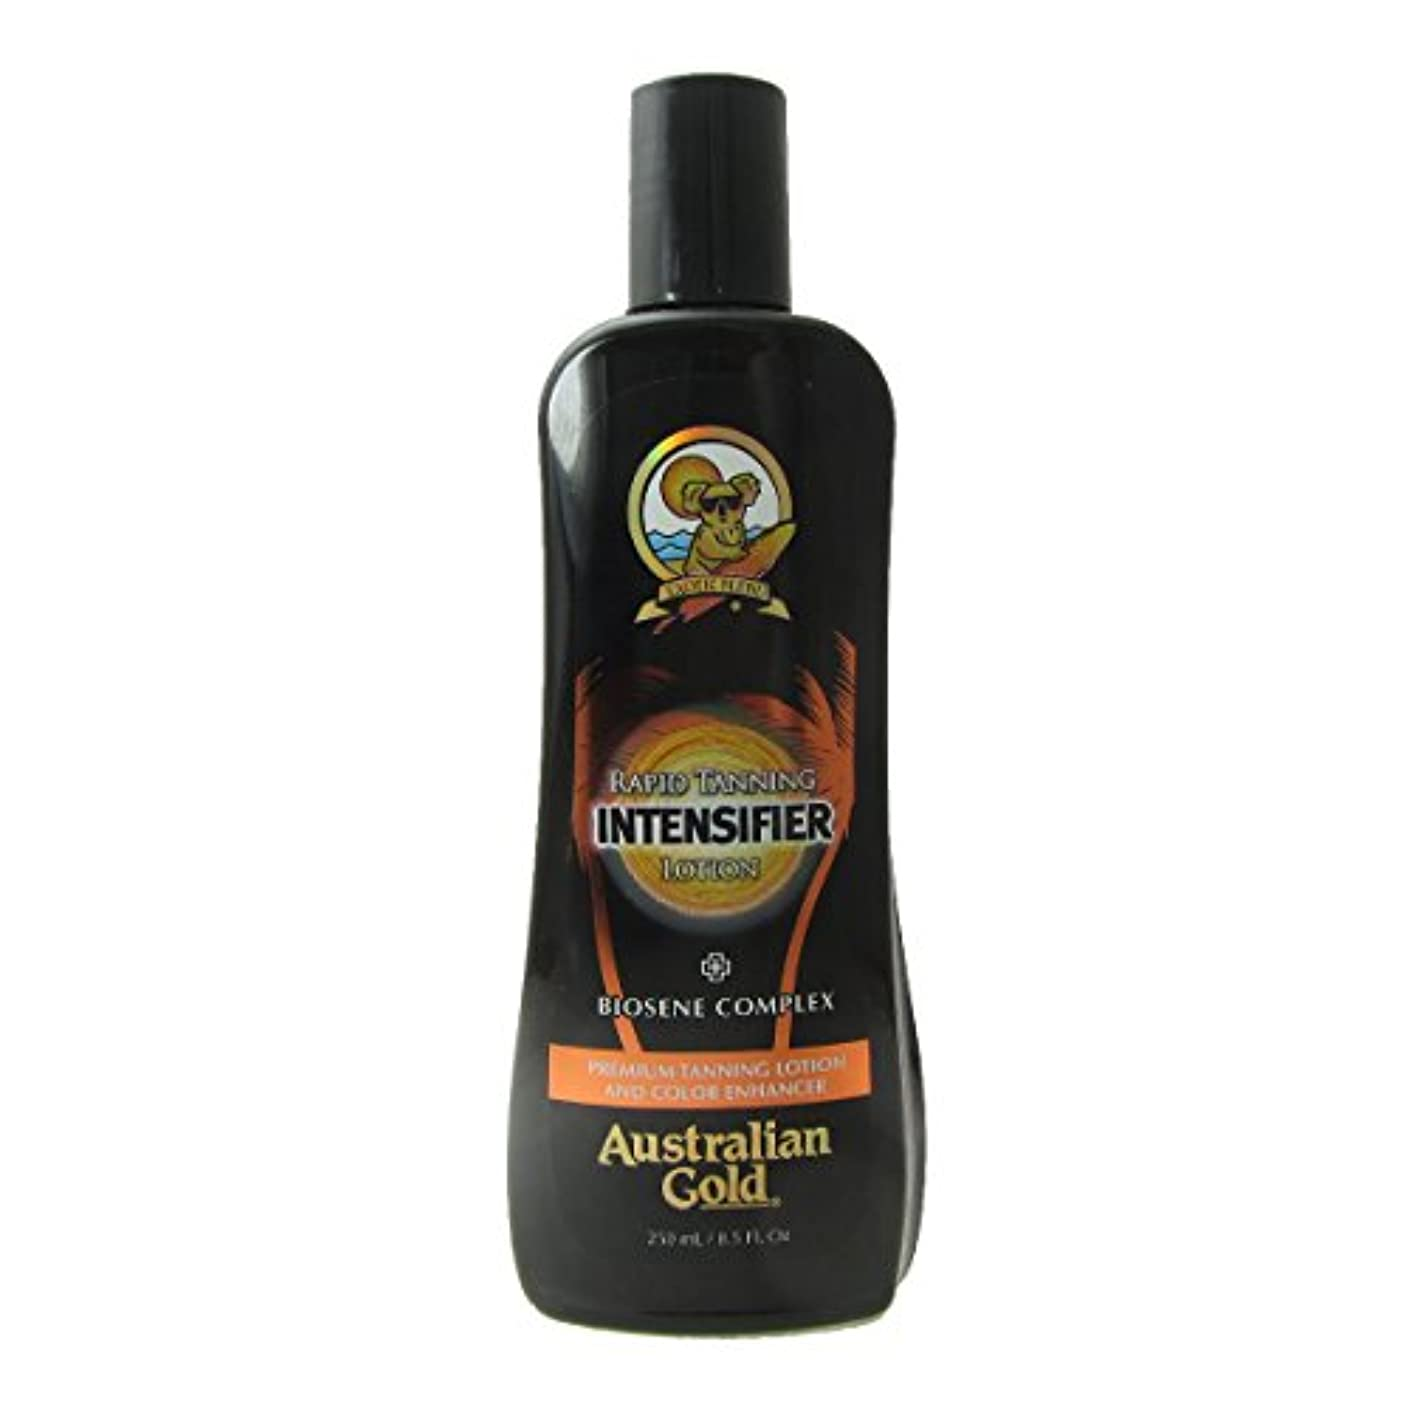 アメリカスツール自由Australian Gold Rapid Tanning Intensifier Lotion 250ml [並行輸入品]